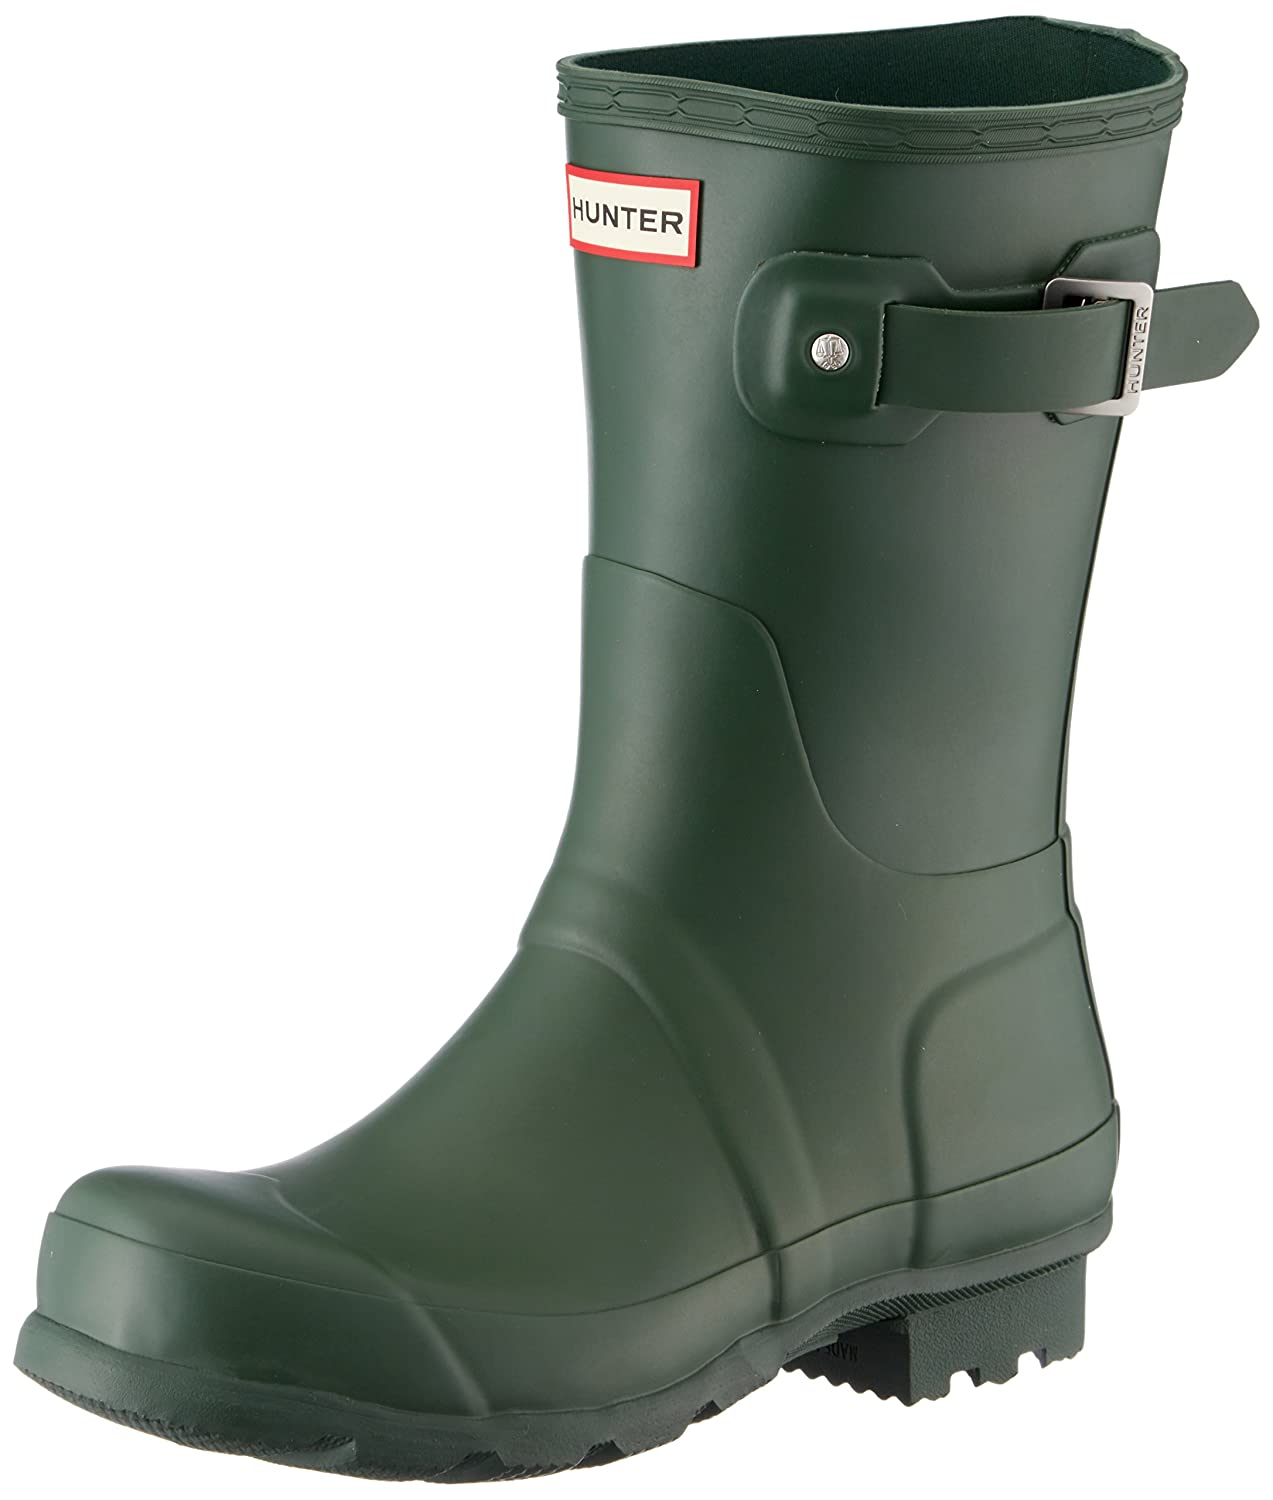 Hunter Women's Original Short Gloss Rain Boots B06X3QJJBV 8 UK 42 EU 10 US|Hunter Green